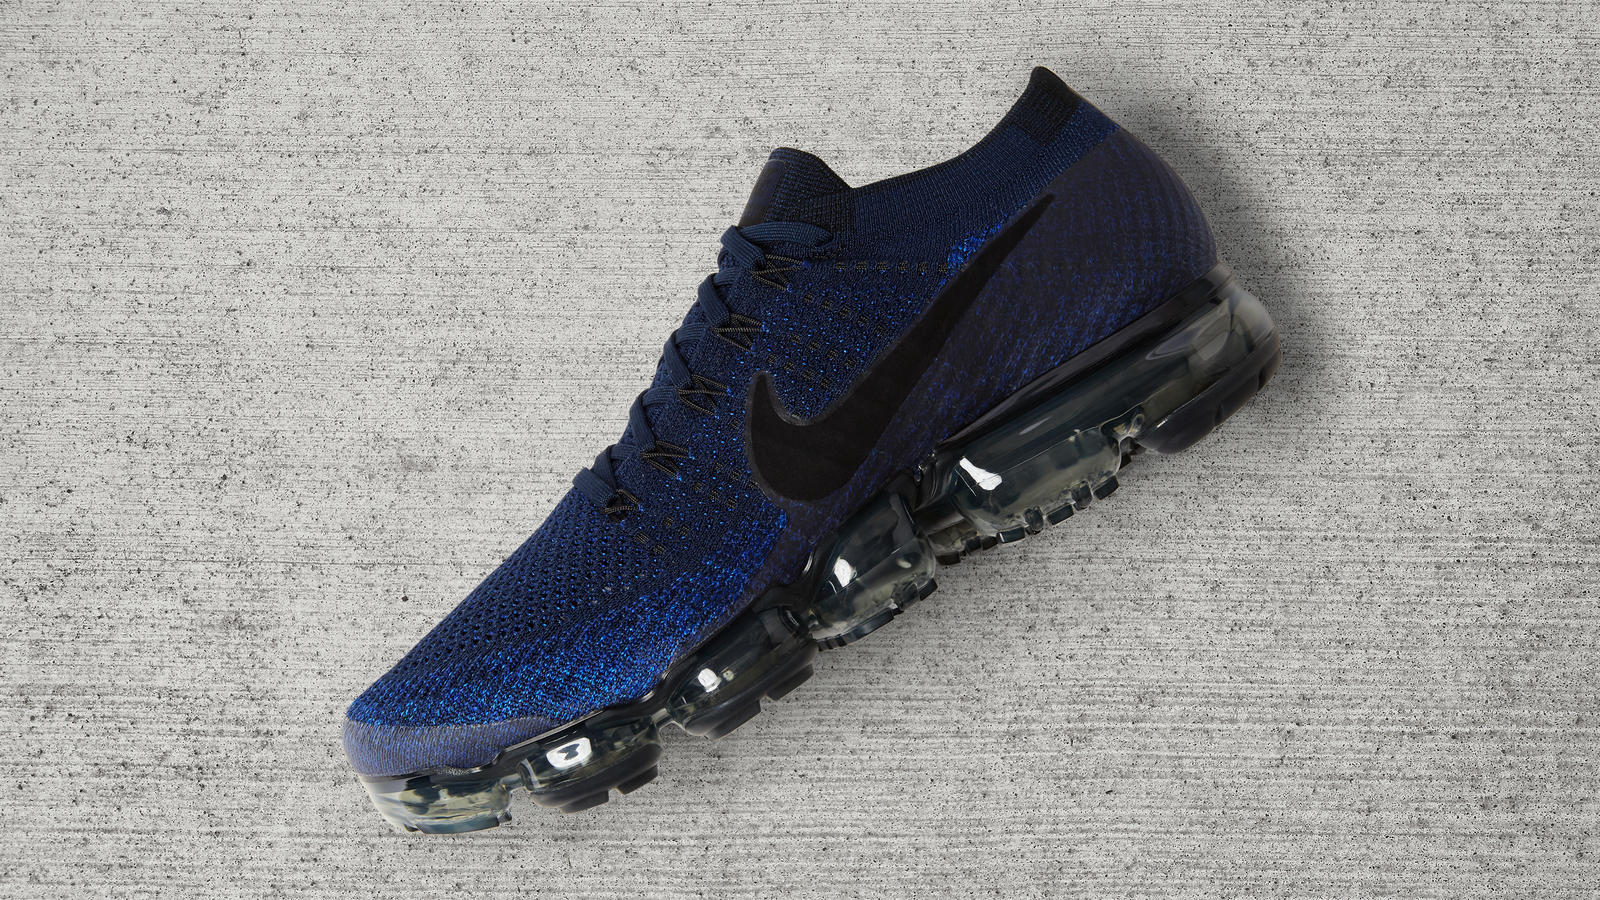 Air vapormax dark blue 4 hd 1600